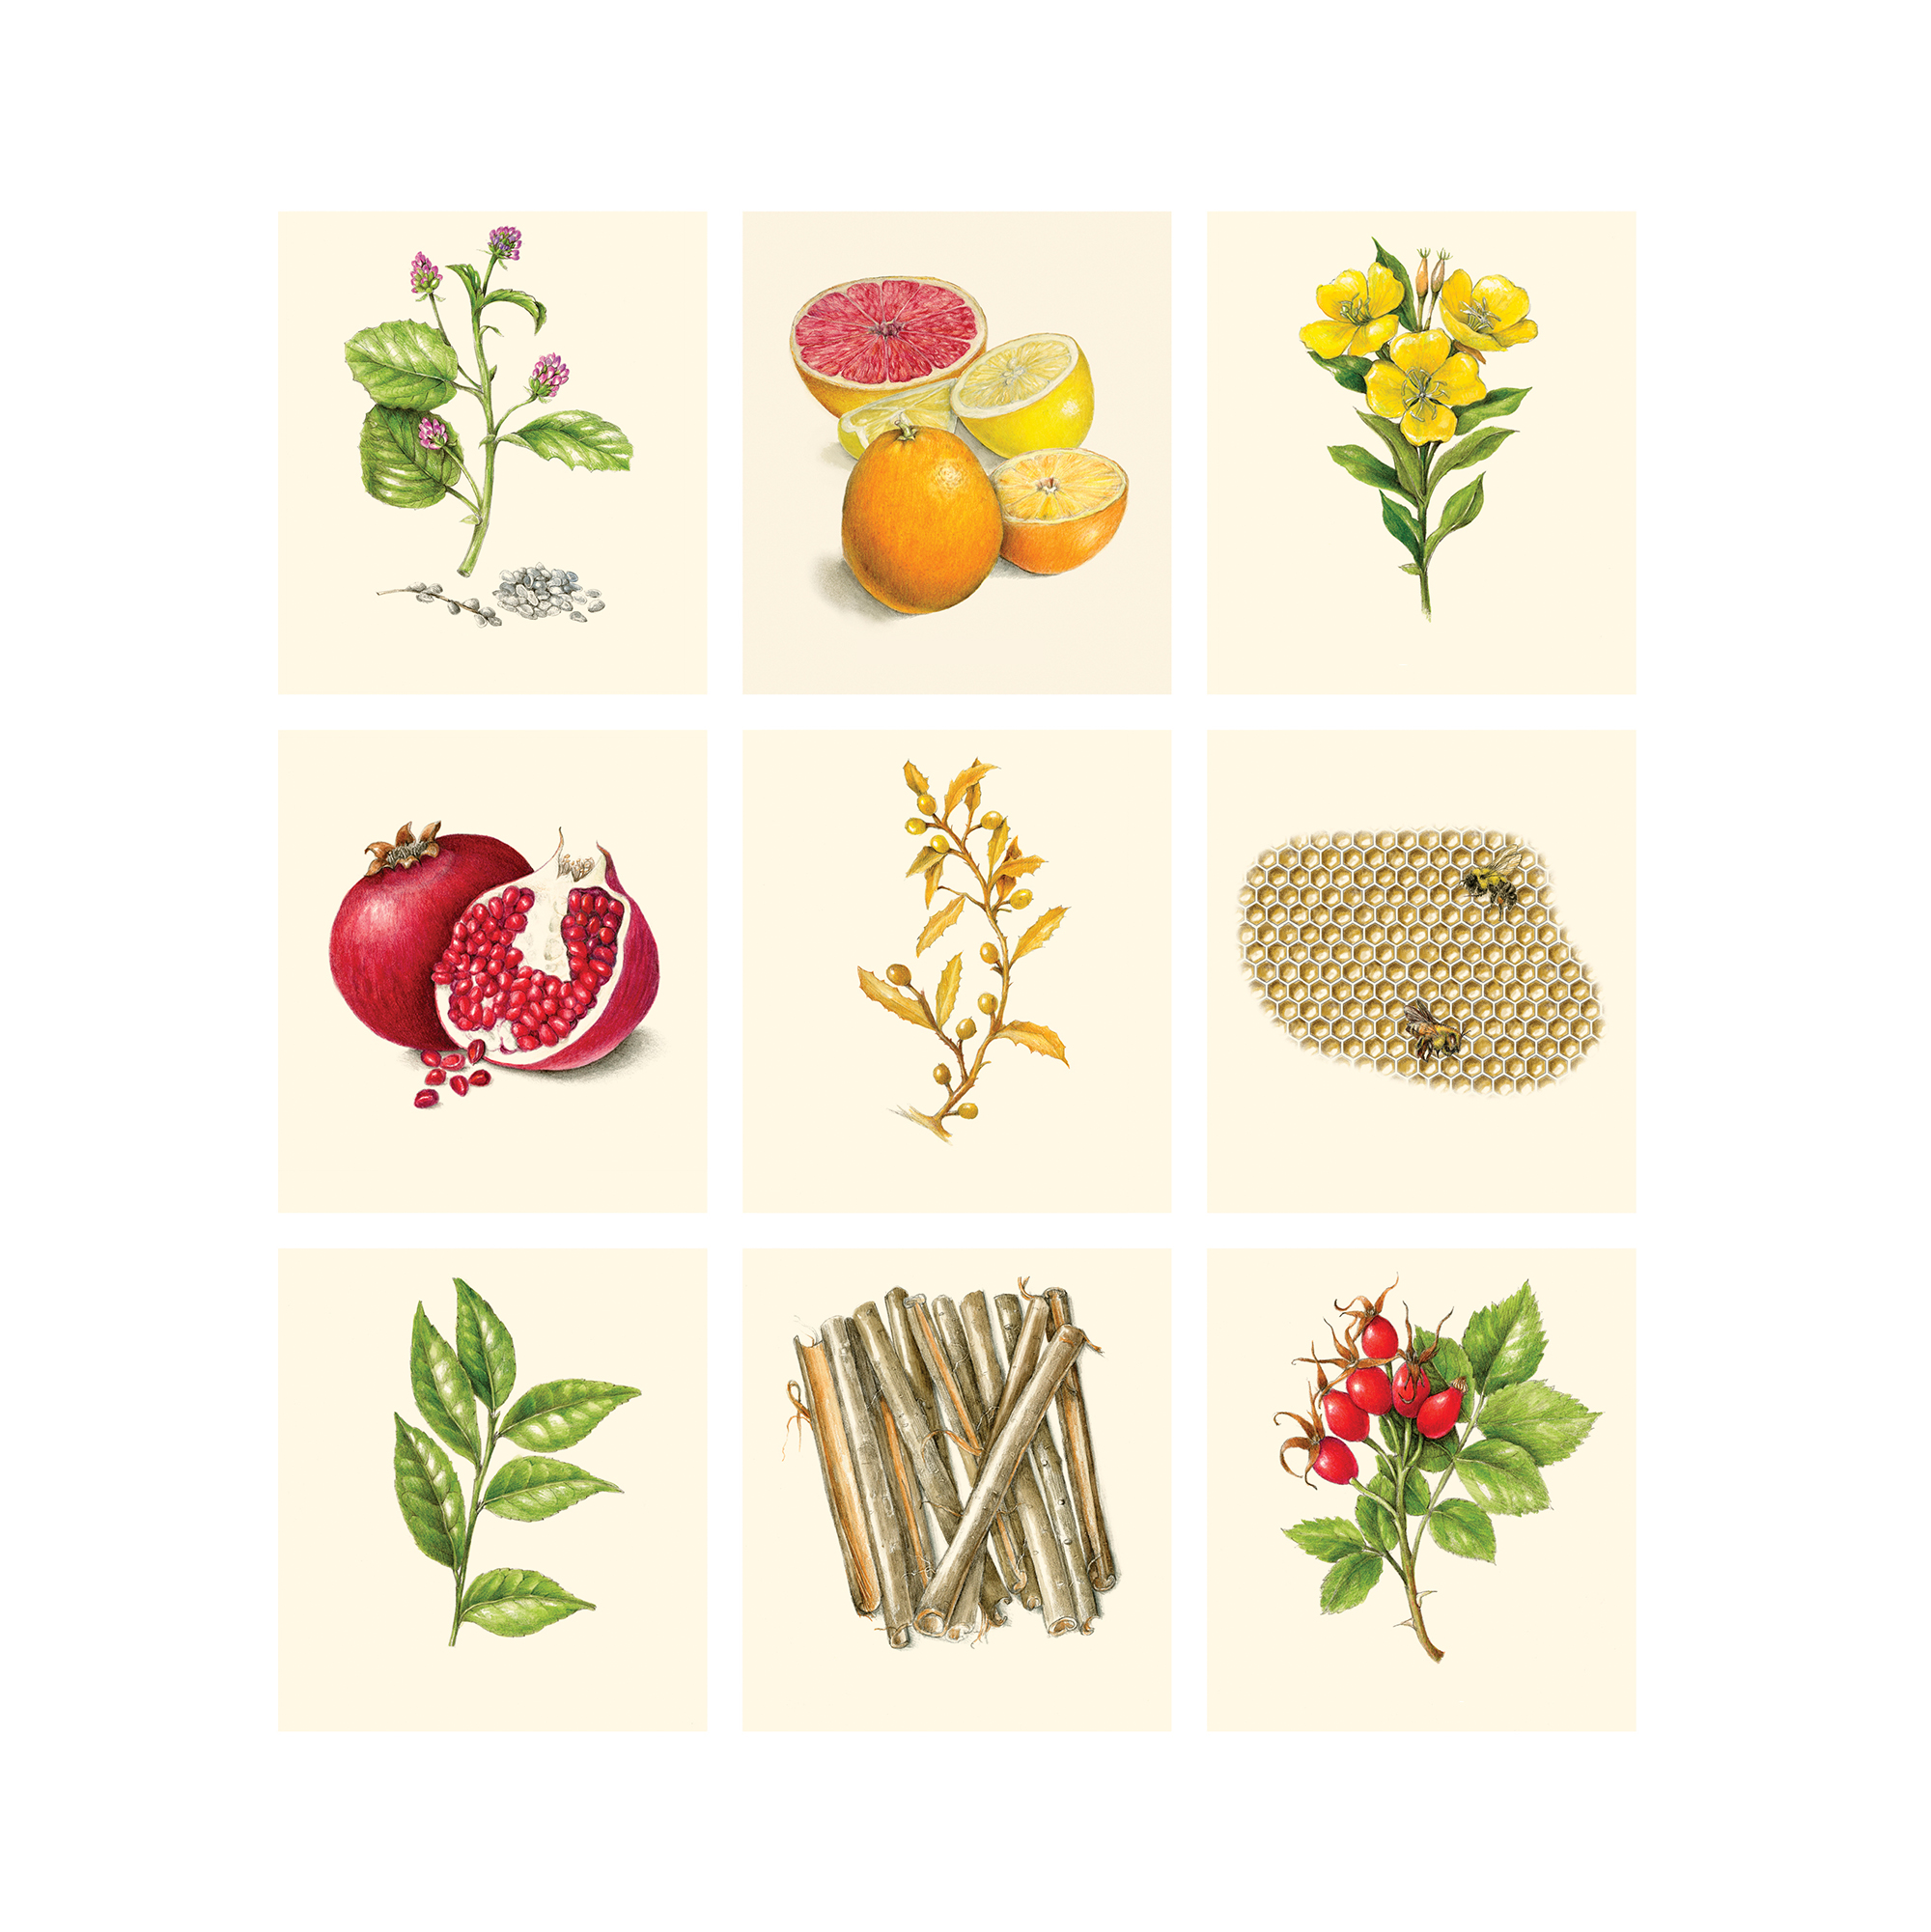 collage of illustrated plants